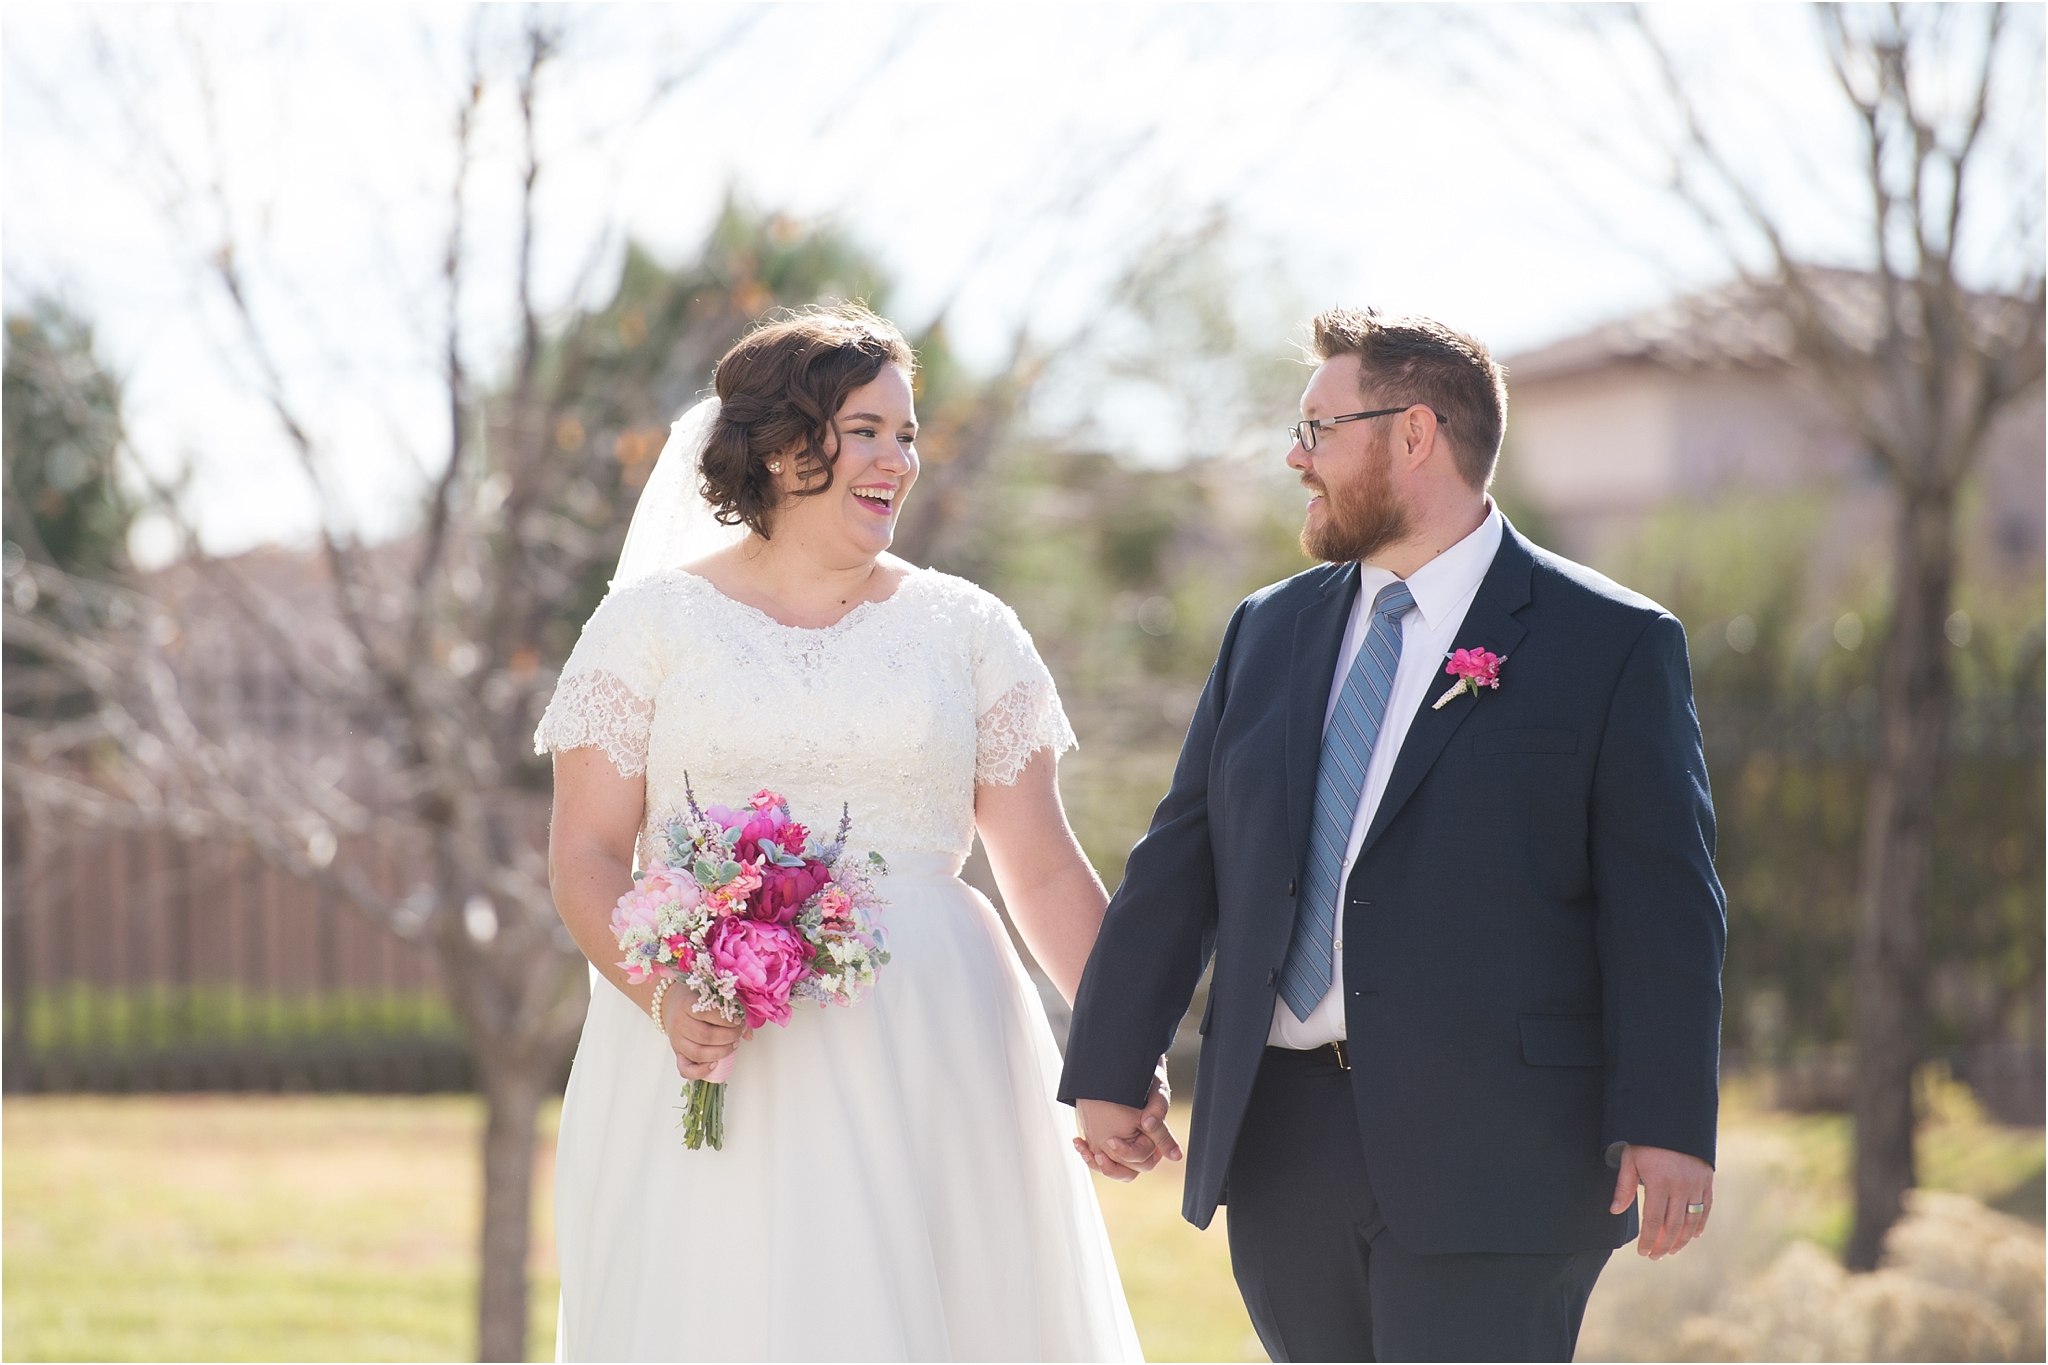 kayla kitts photography - albuquerque wedding photographer - hairpins and scissors - a cake odyssey - new mexico wedding photographer_0102.jpg